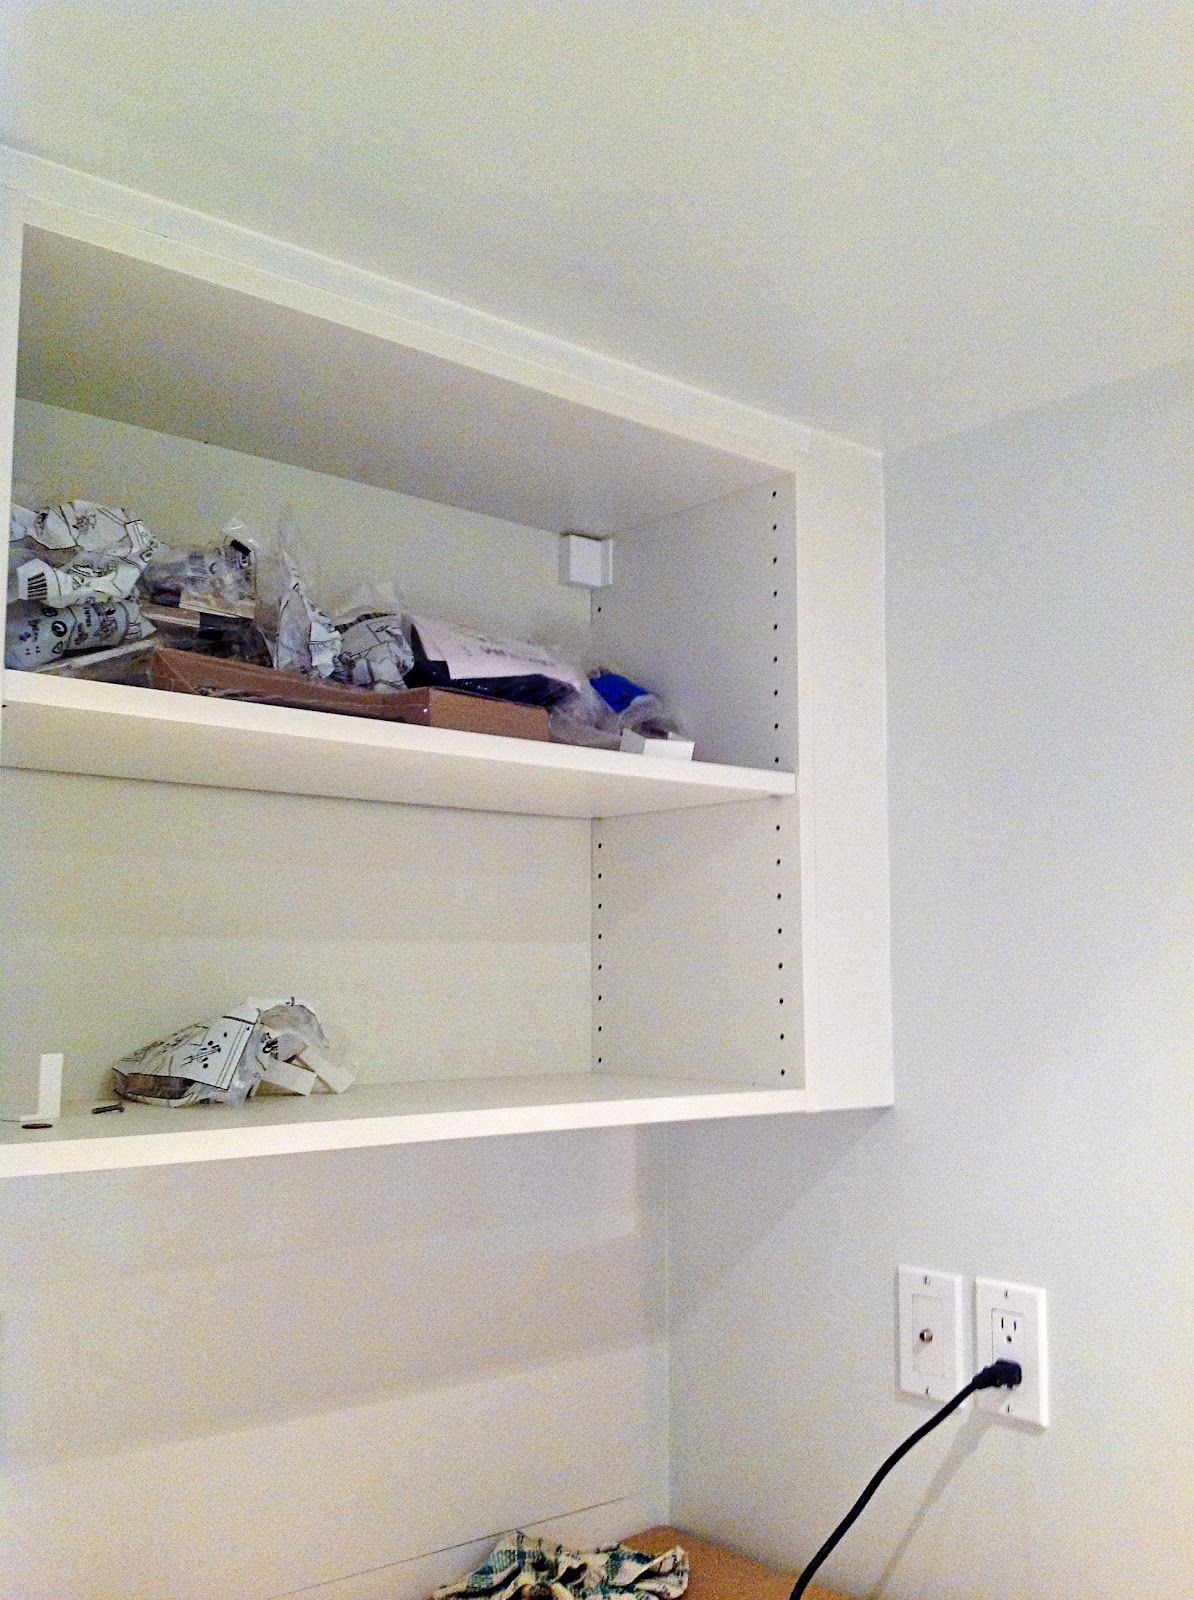 How To Make Cabinets Look Built In Ikea Pax Ikea Kitchen Cabinets Ikea Kitchen